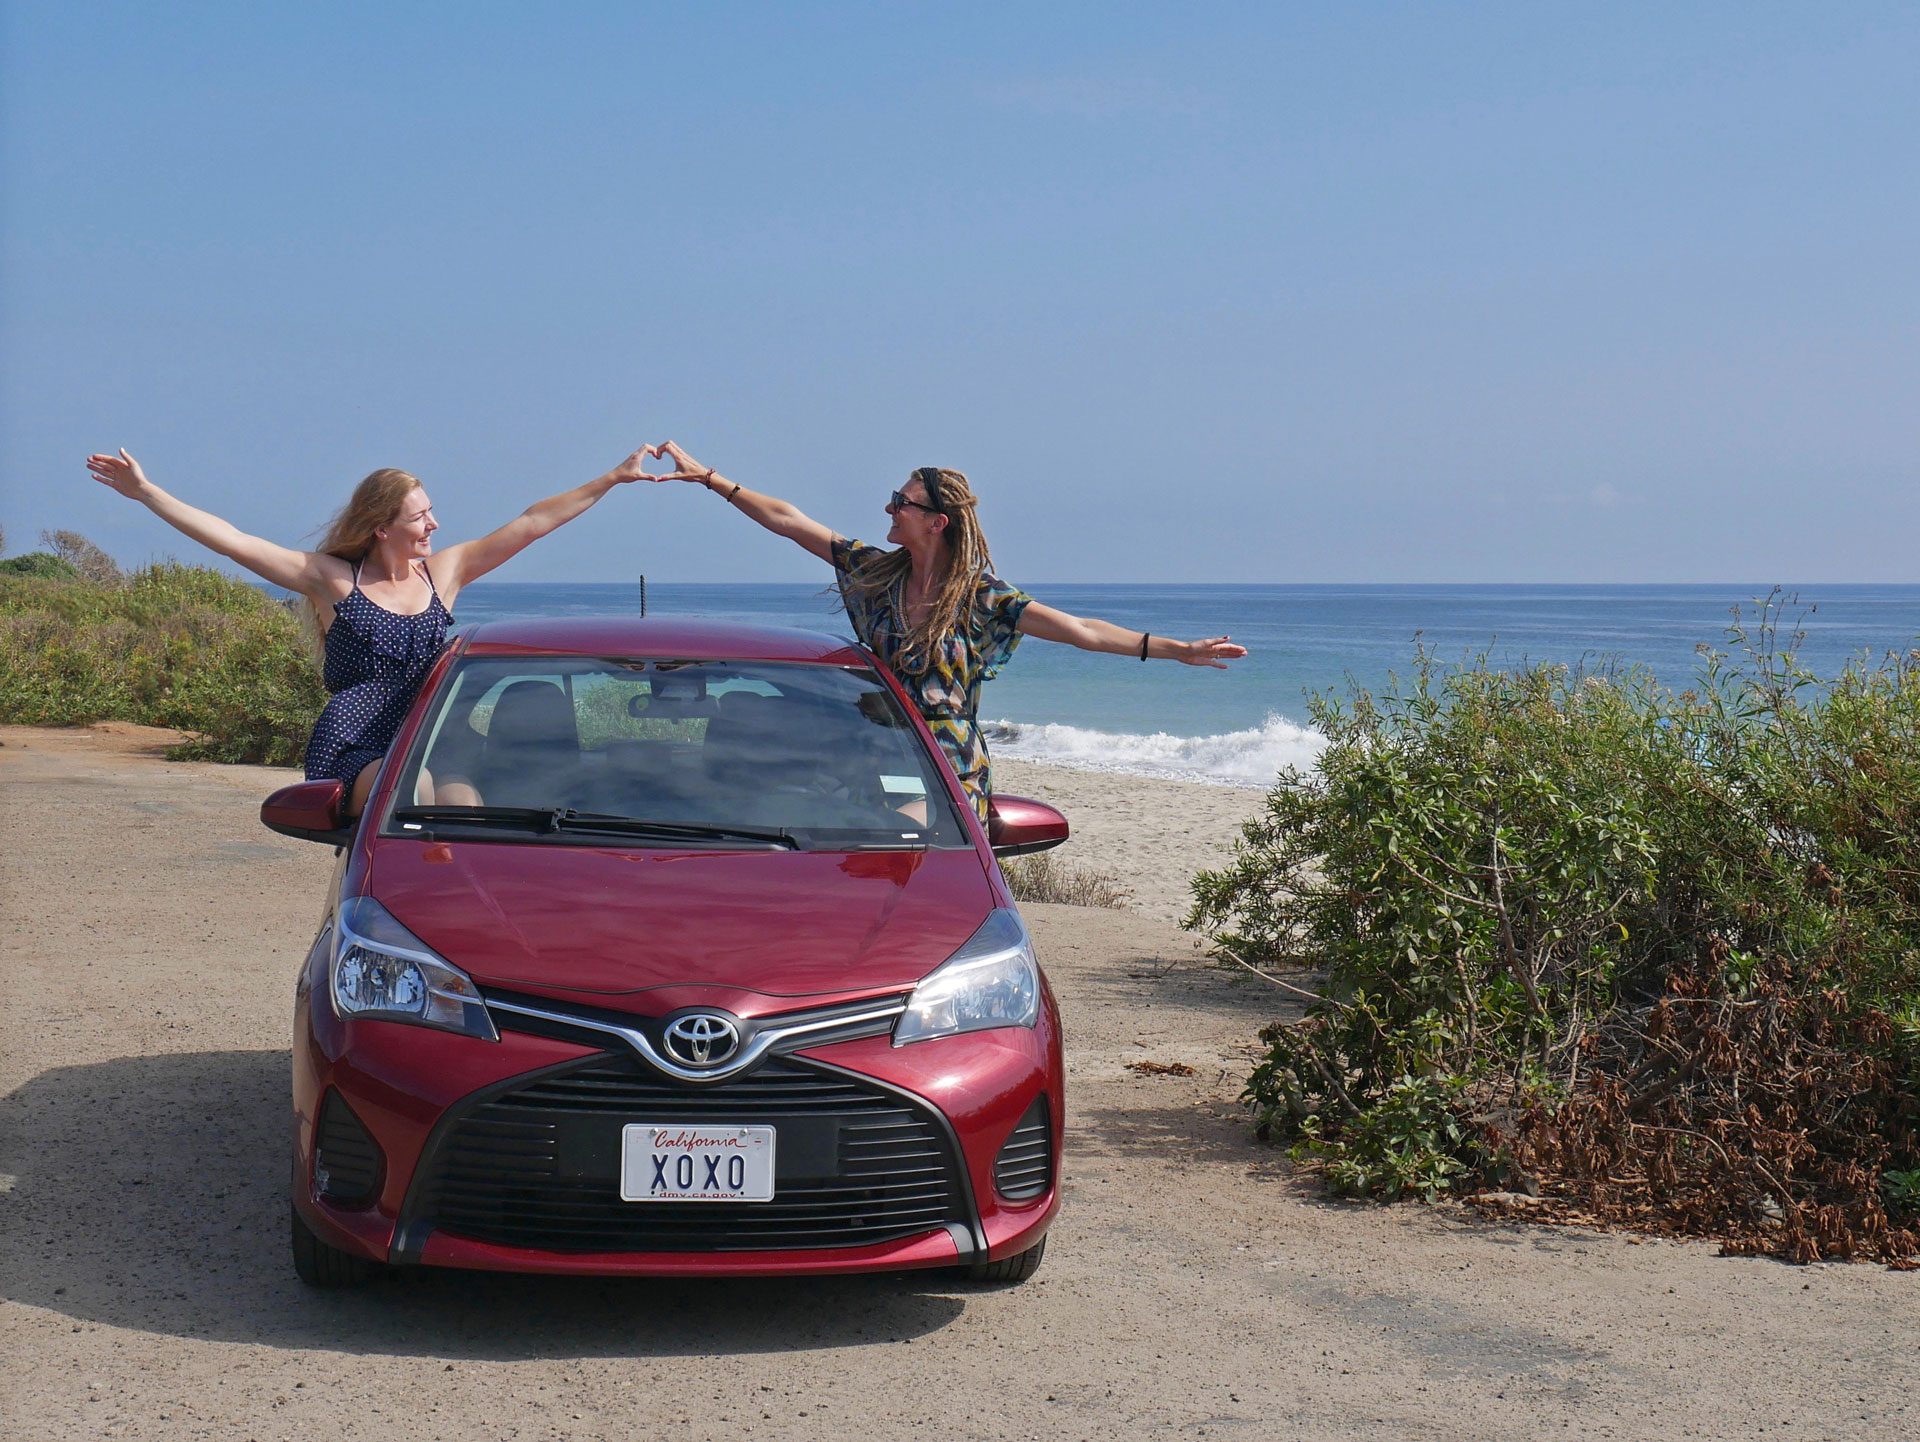 Sisters with red road trip Toyota at Leo Carillo State Beach, Malibu, CA